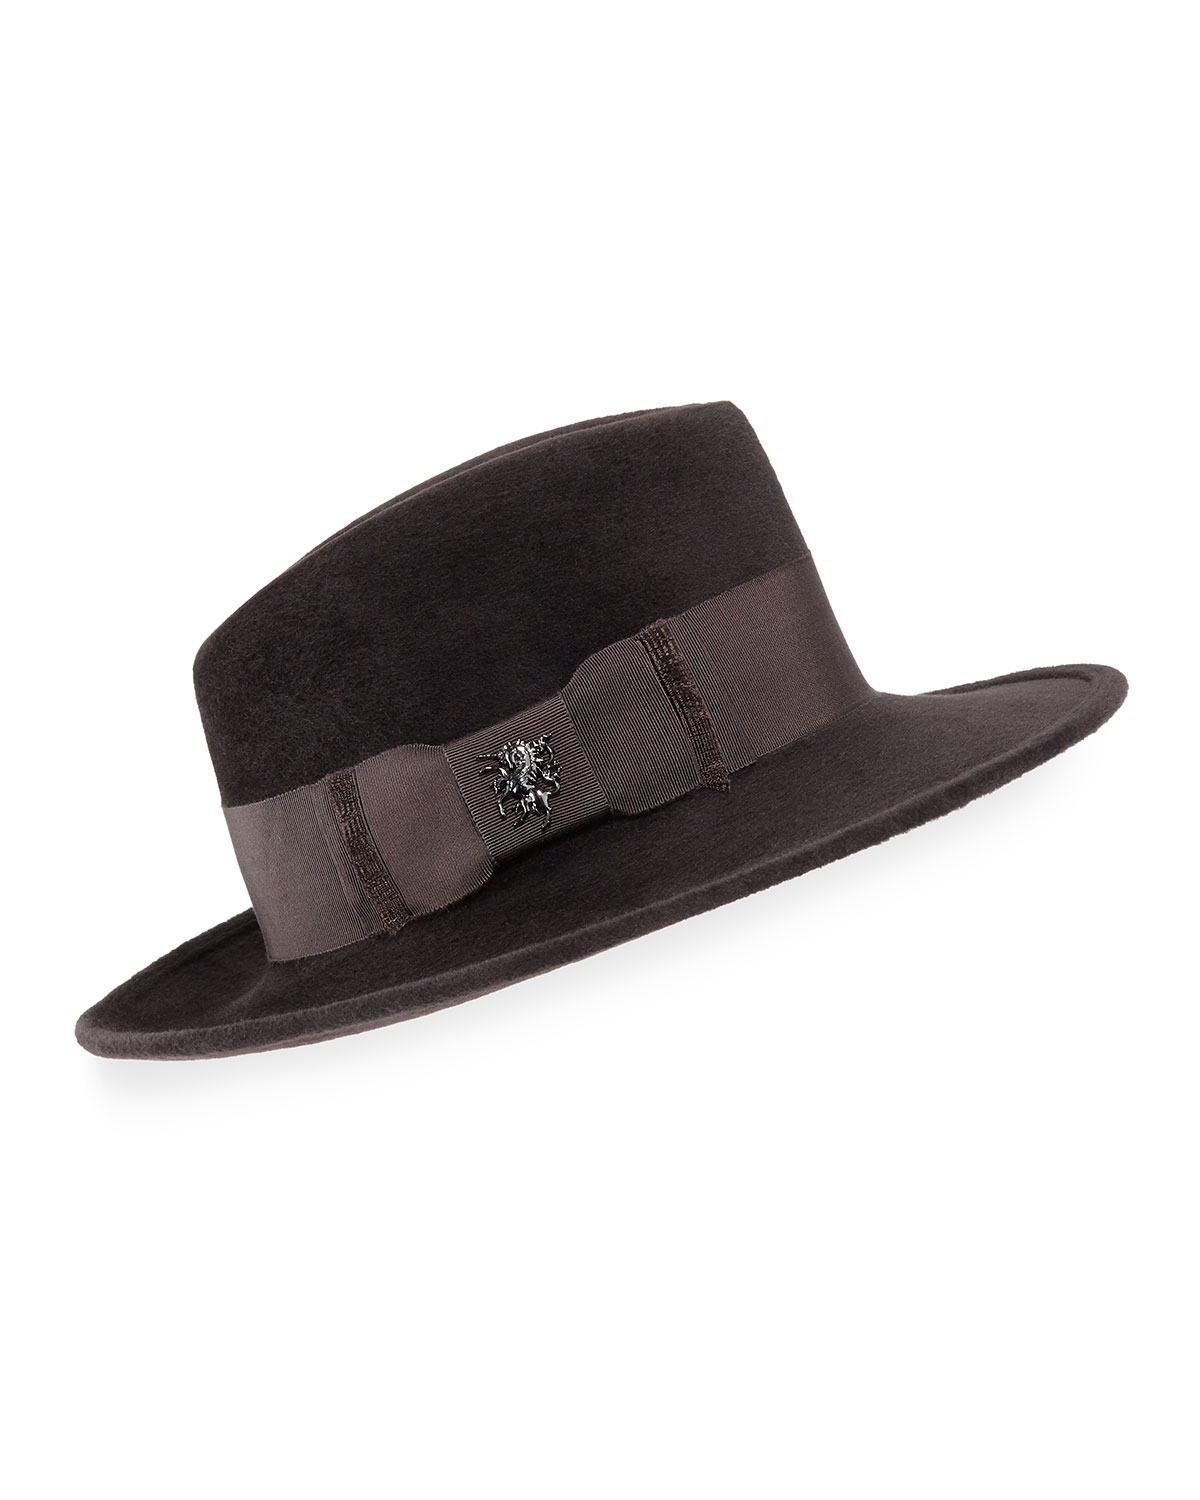 Philip Treacy Hats VELOUR RAIDER TRILBY HAT